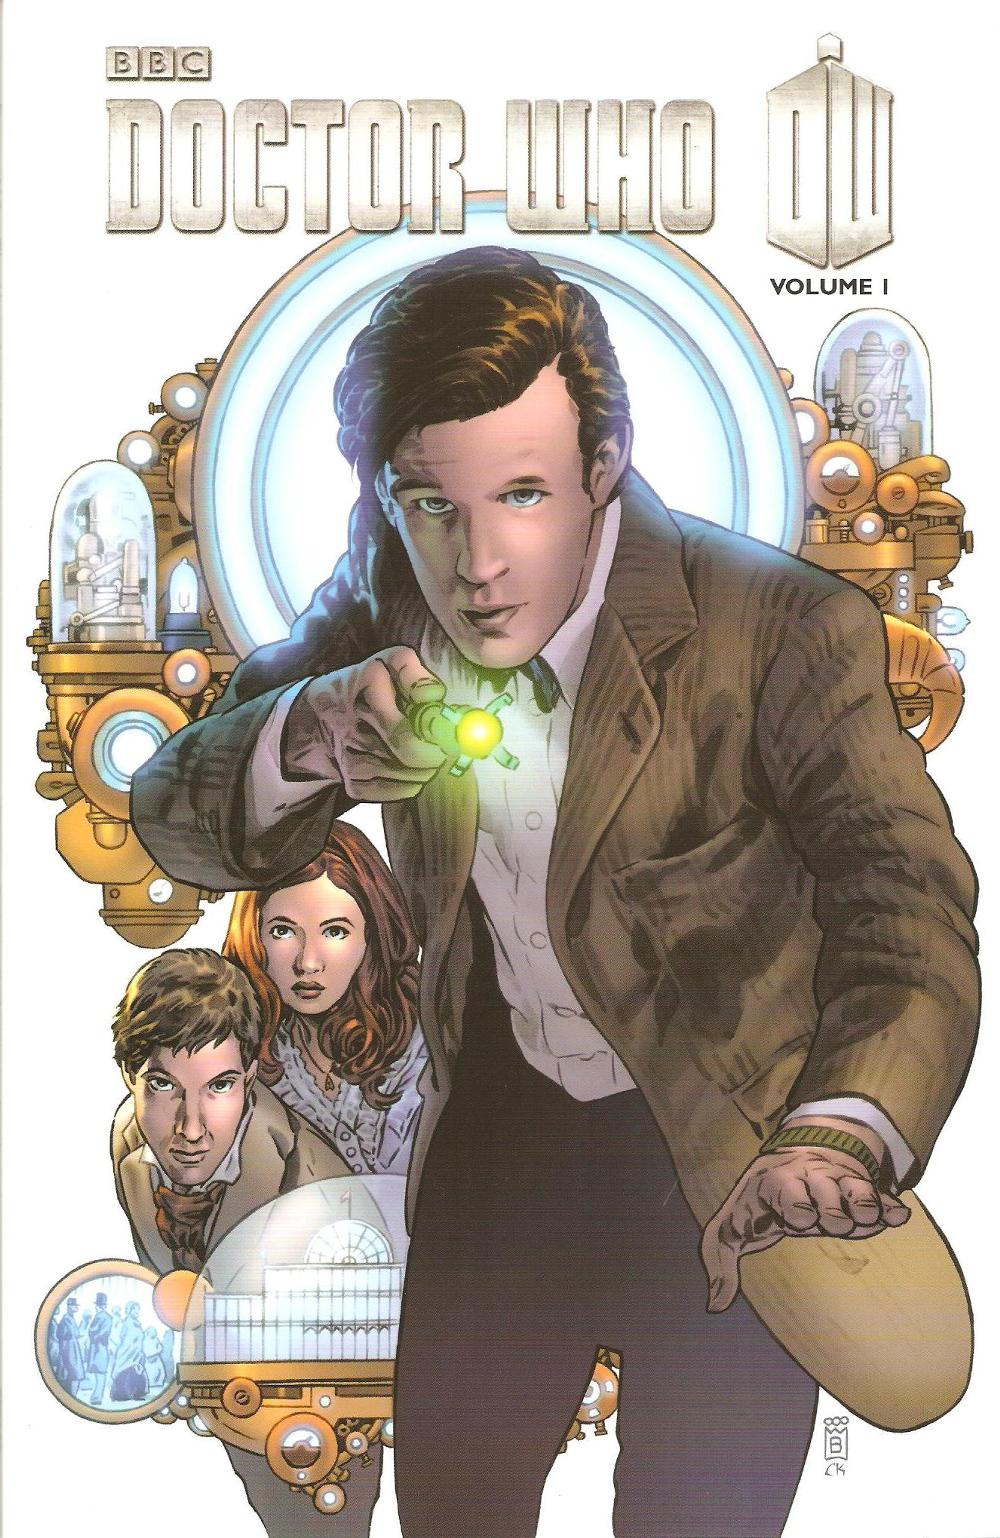 Hypothetical Gentleman (Series 3 Vol 1) (Credit: IDW)